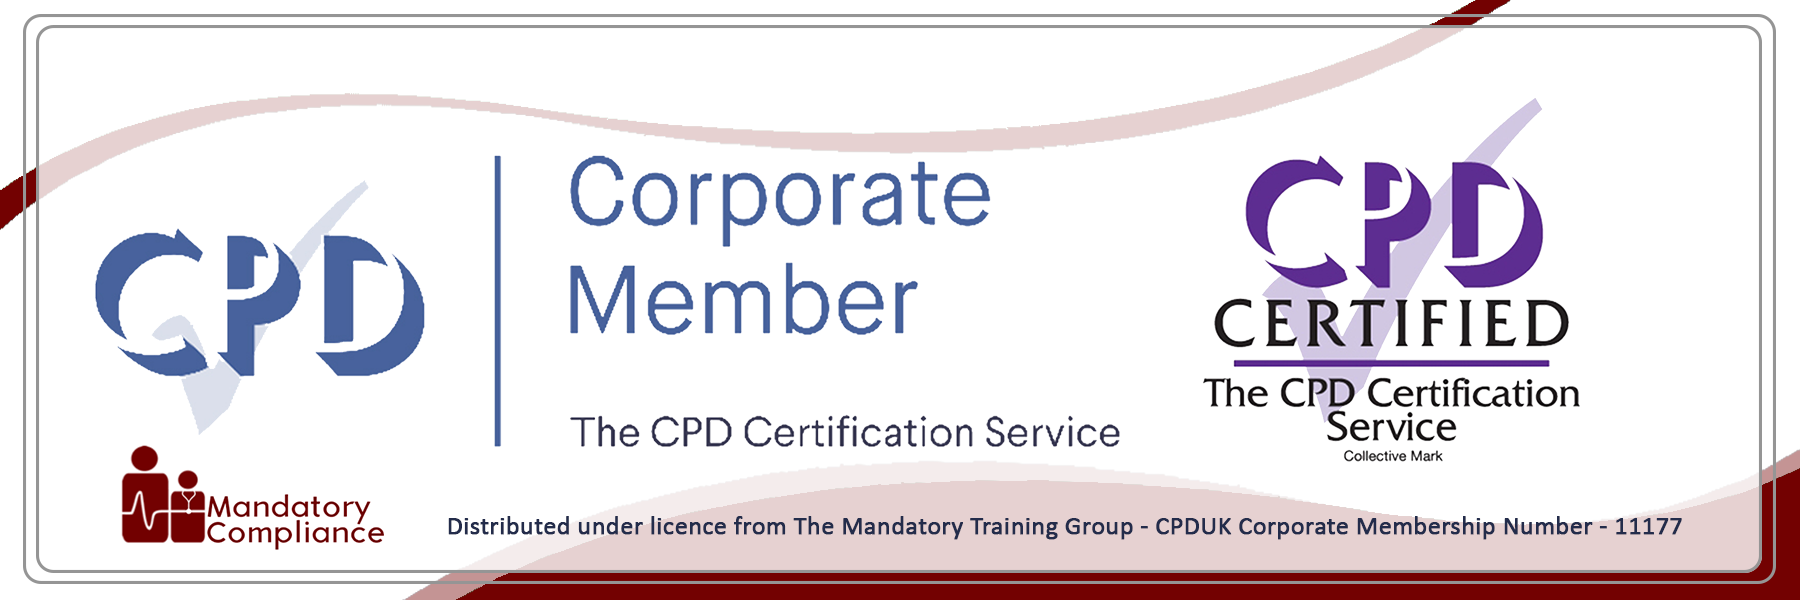 Measuring Results From Training - Online Training Course - CPD Accredited - Mandatory Compliance UK -